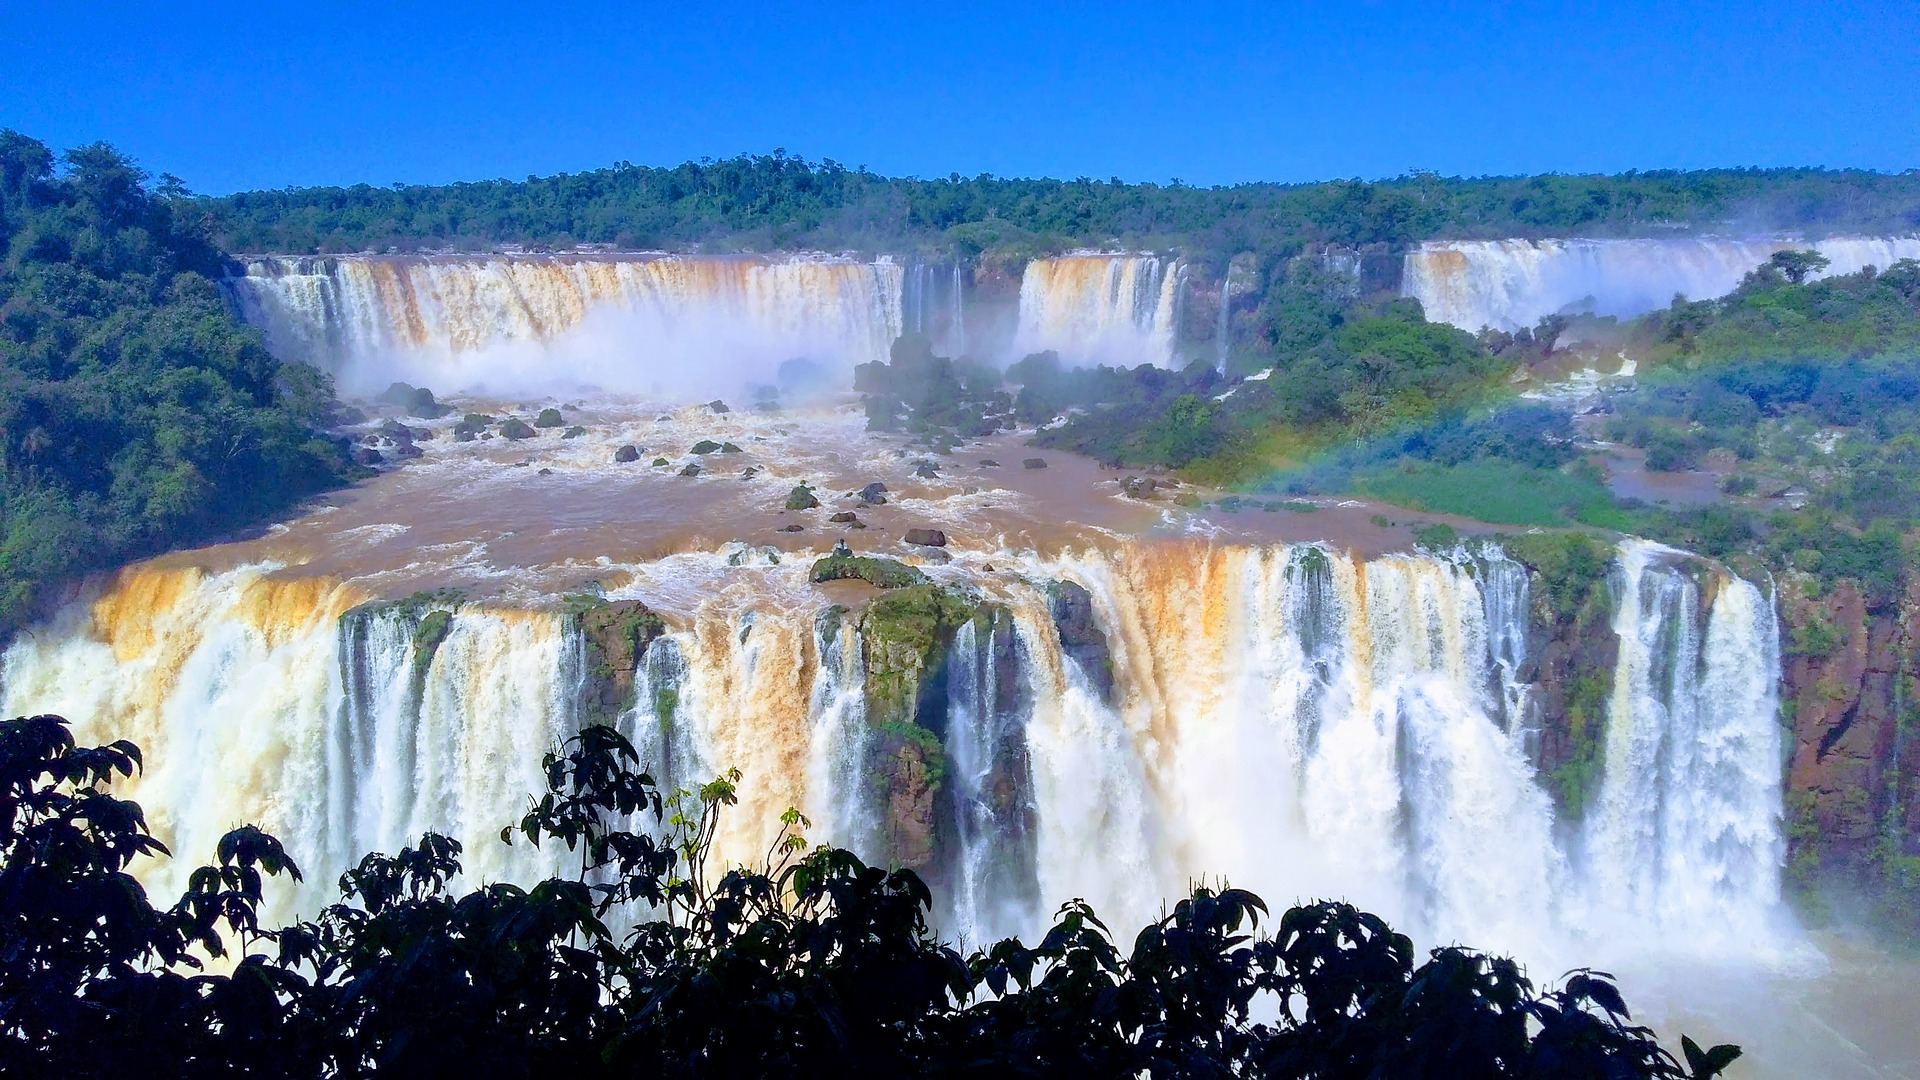 Iguazu Falls photo by Carlos Bisca